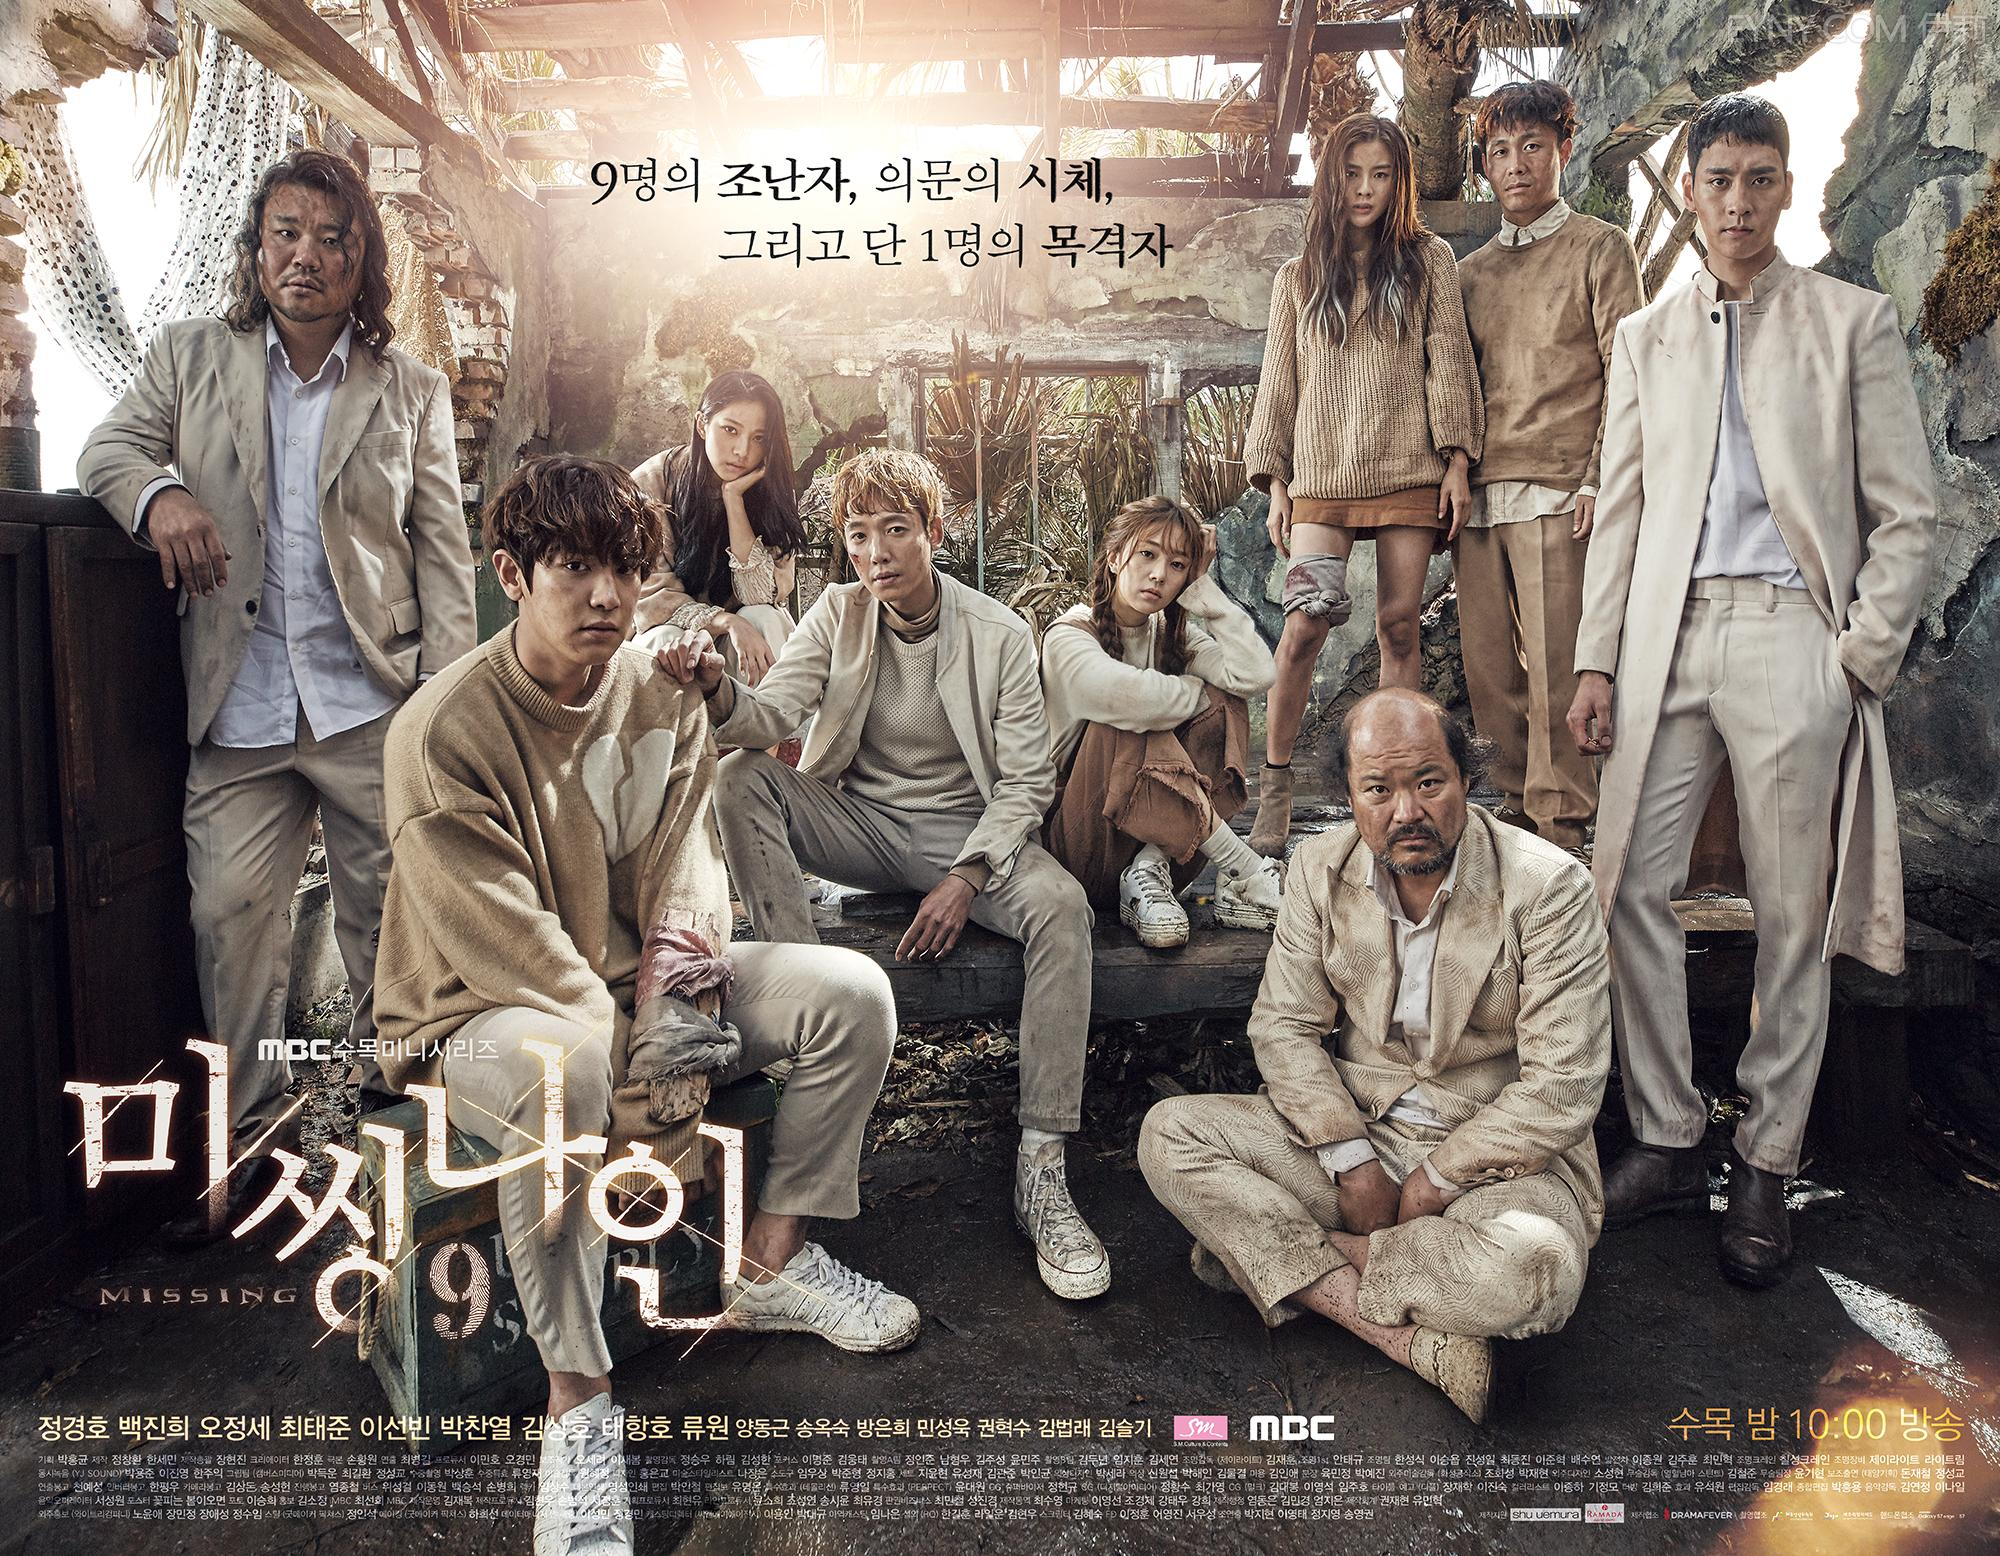 Missing 9 EP9